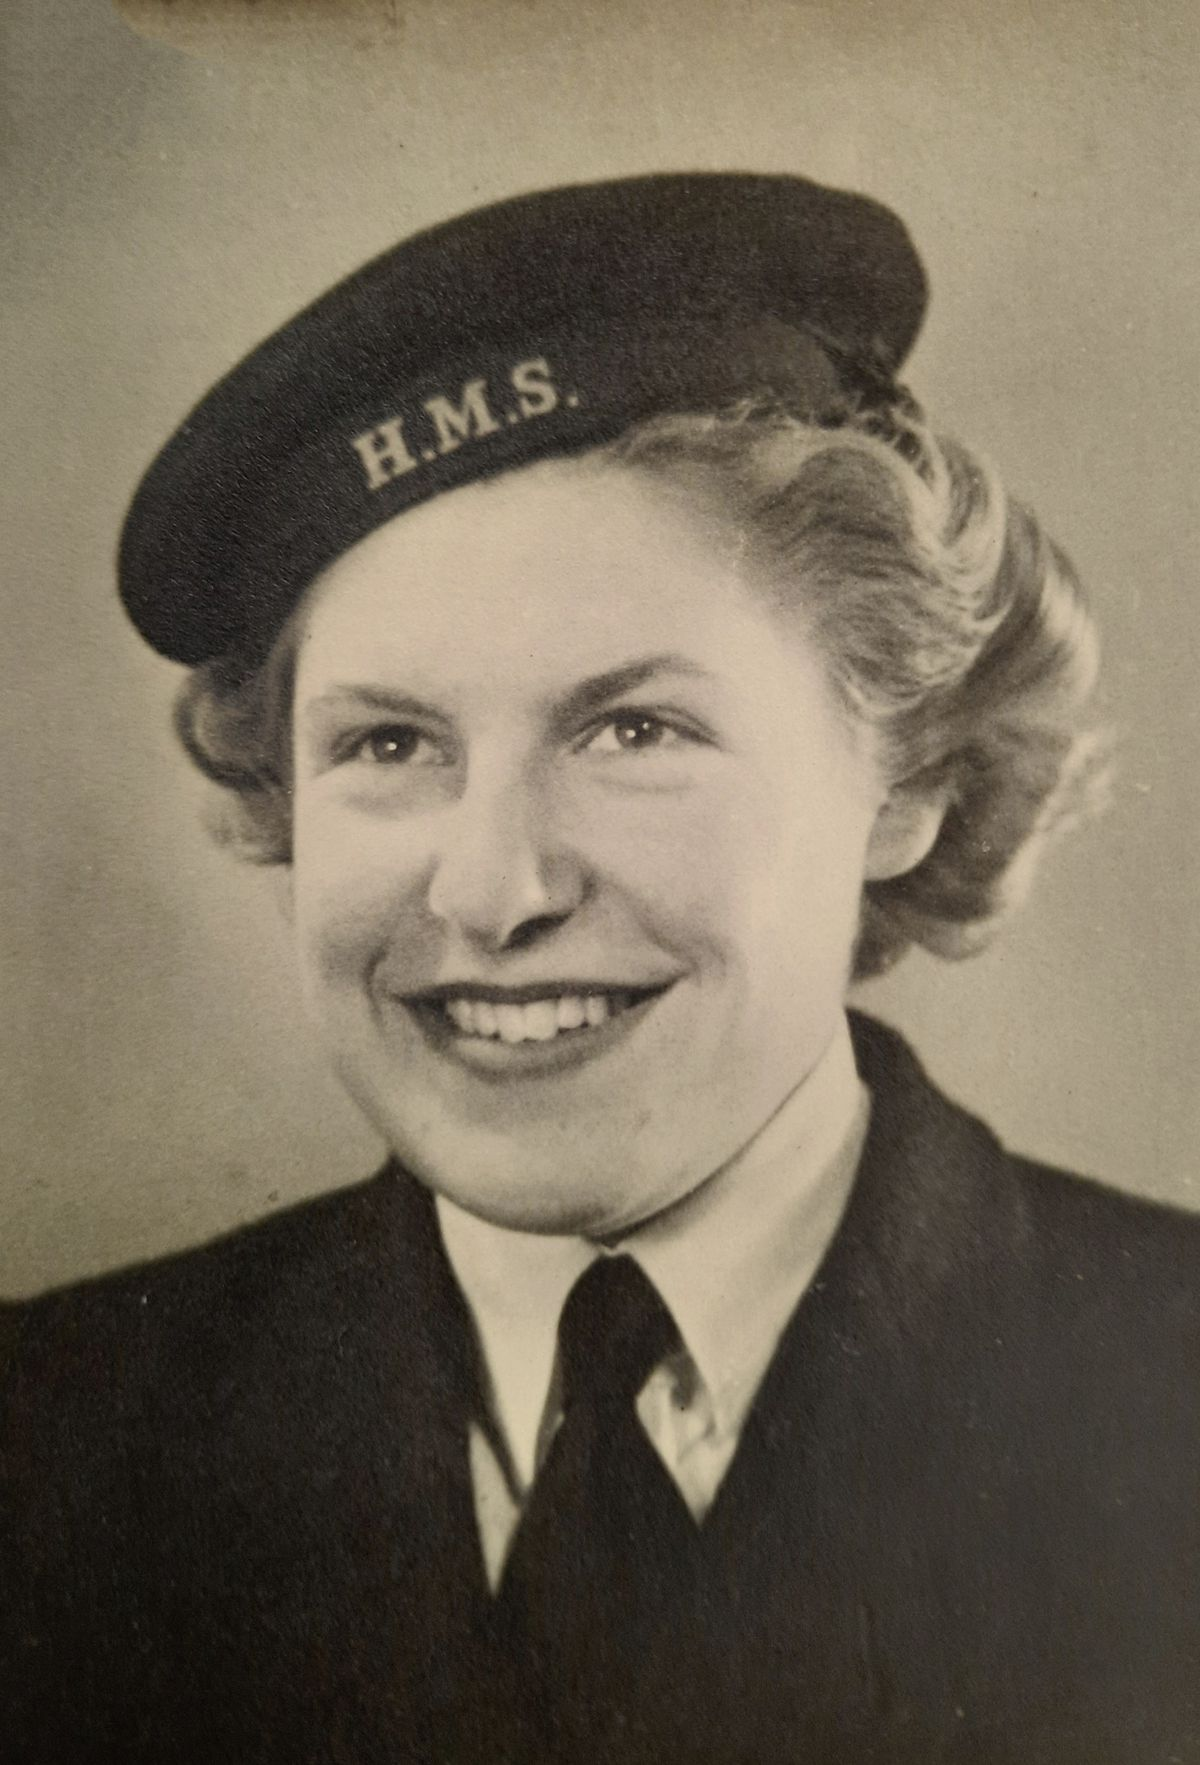 Following her father into the services was Marj Dodsworth's choice rather than war work such as munitions manufacture.